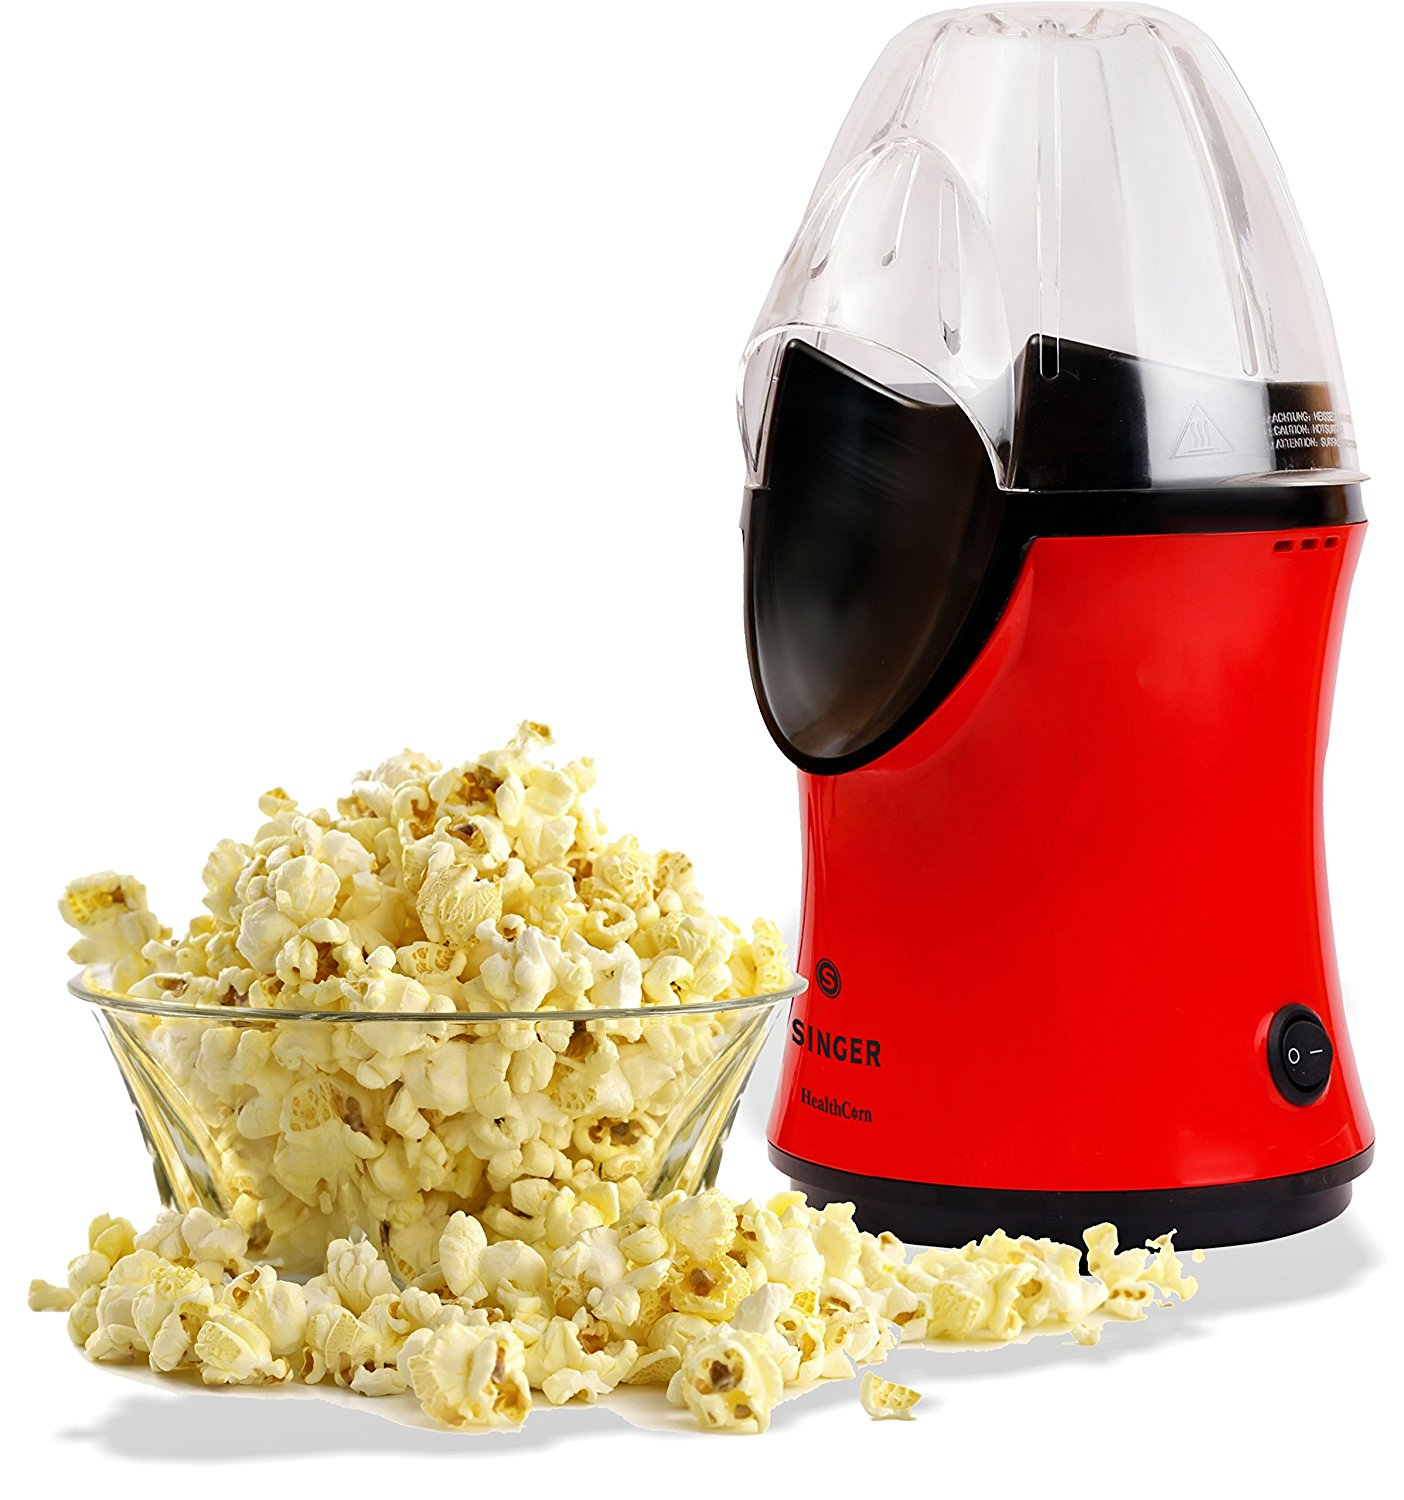 Image result for popcorn maker'